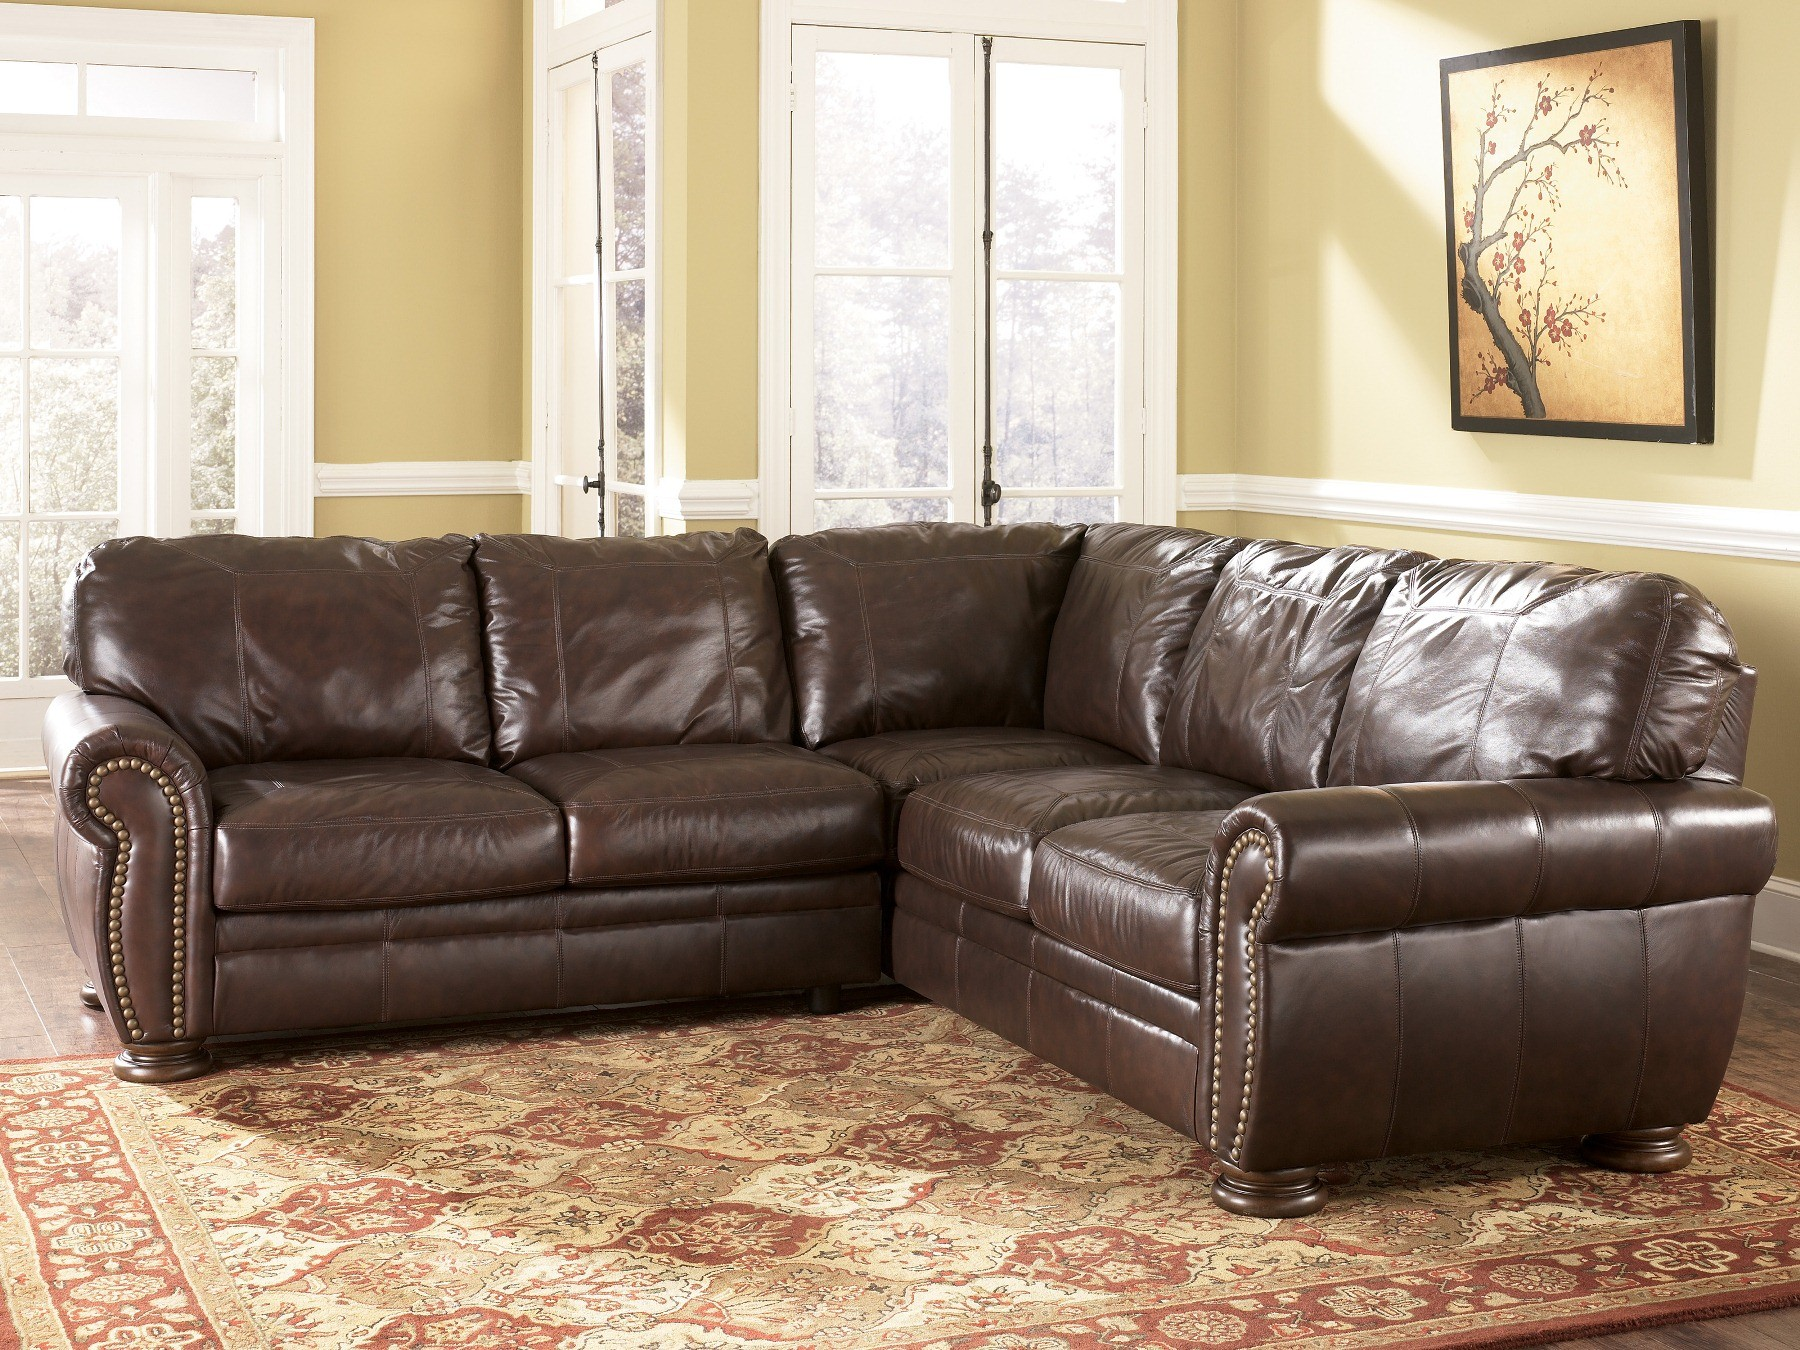 ashley furniture palmer sofa bed red walnut sectional 2050067